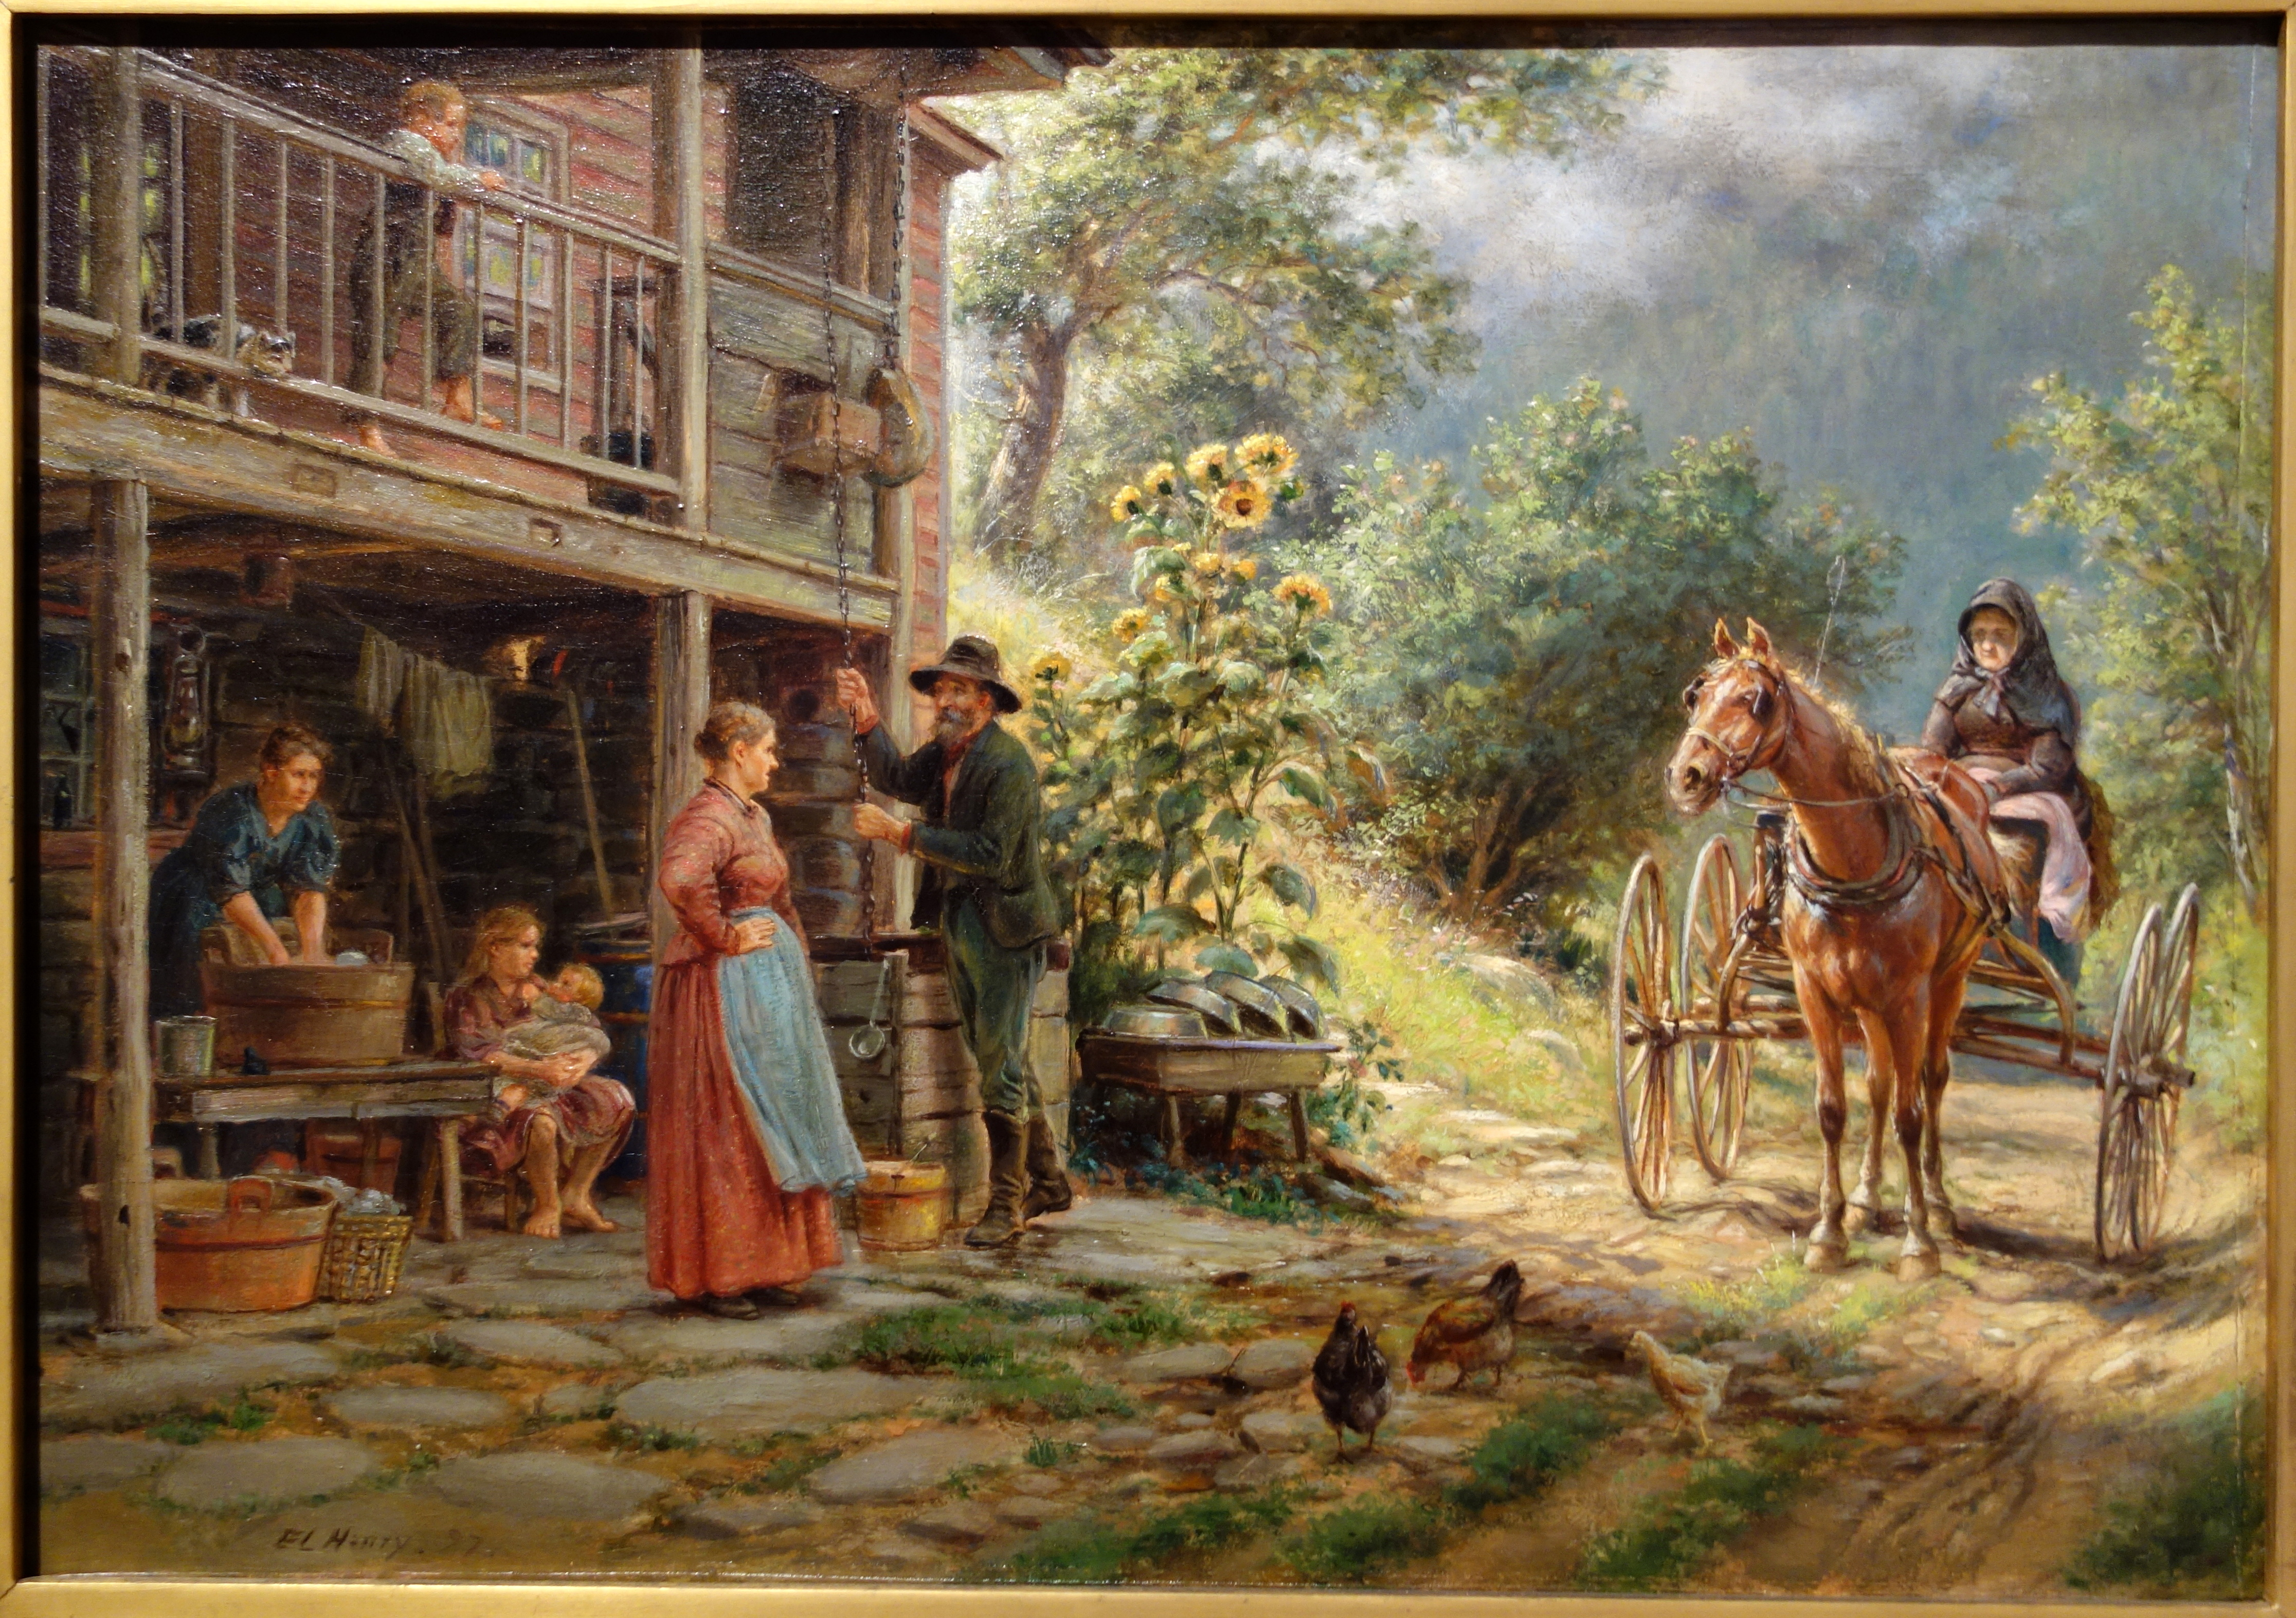 Oil Paintings Charlrston Wv